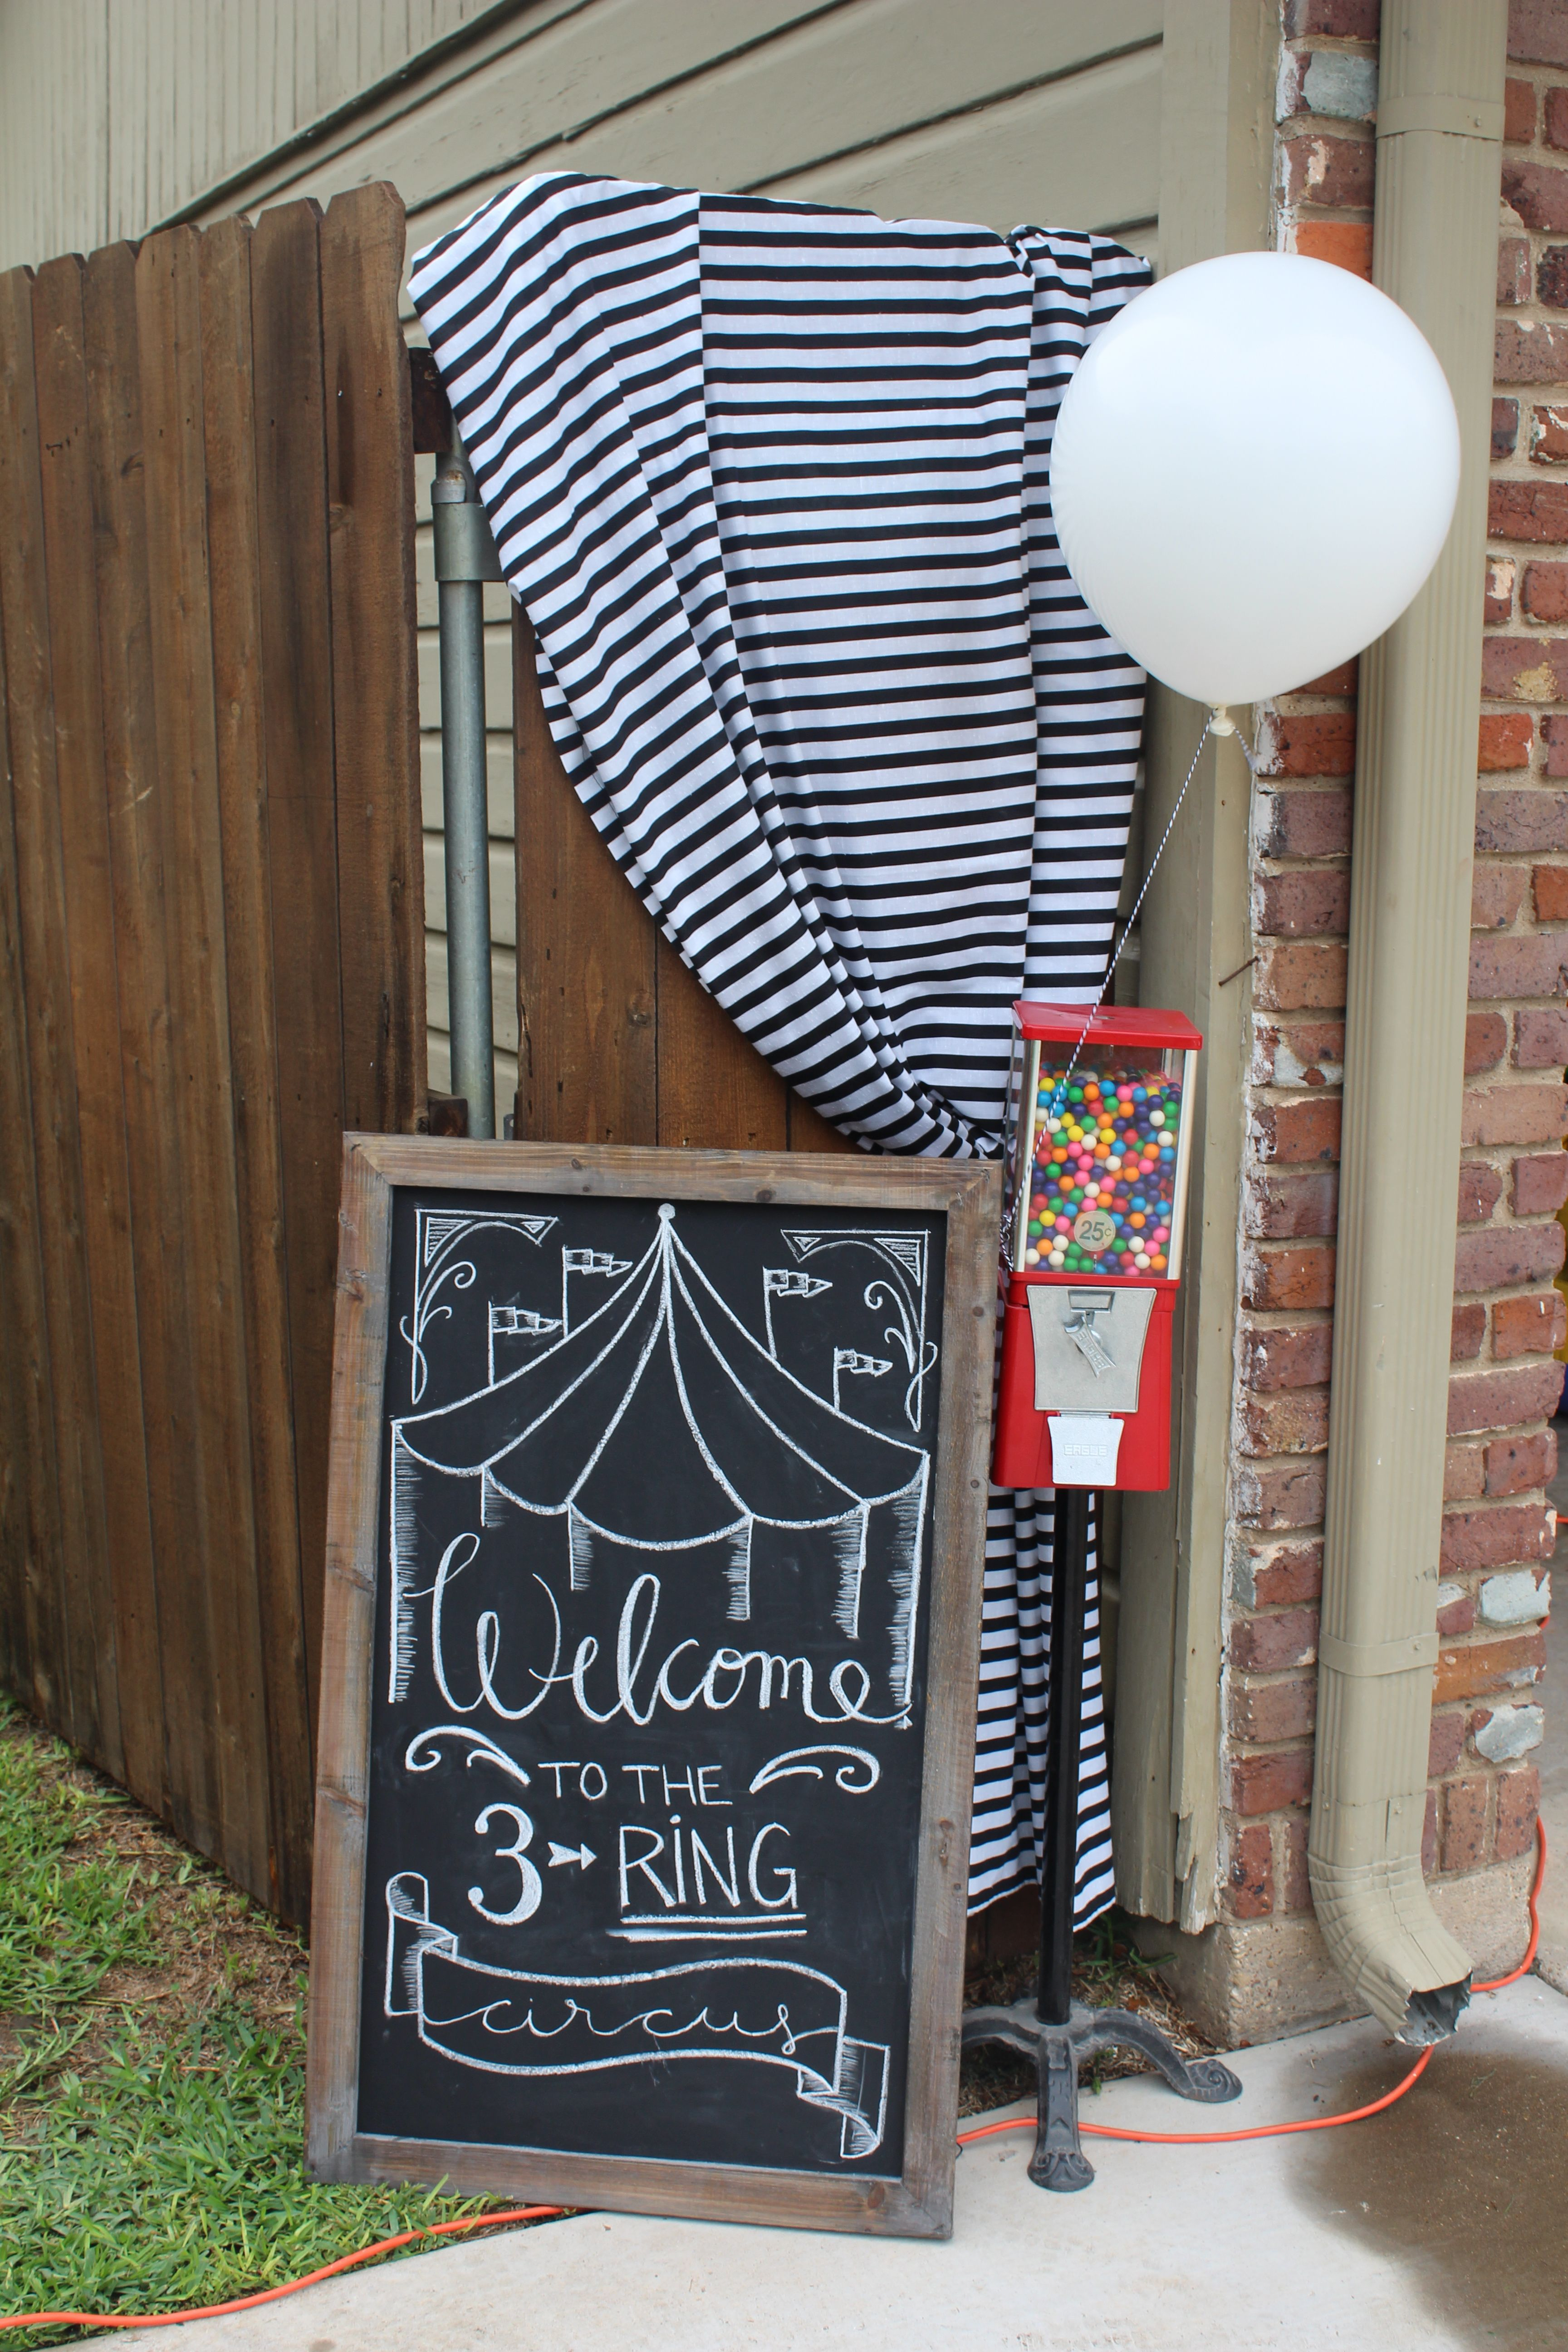 Use Chalkboards Even Make Some With Wood And Paint With